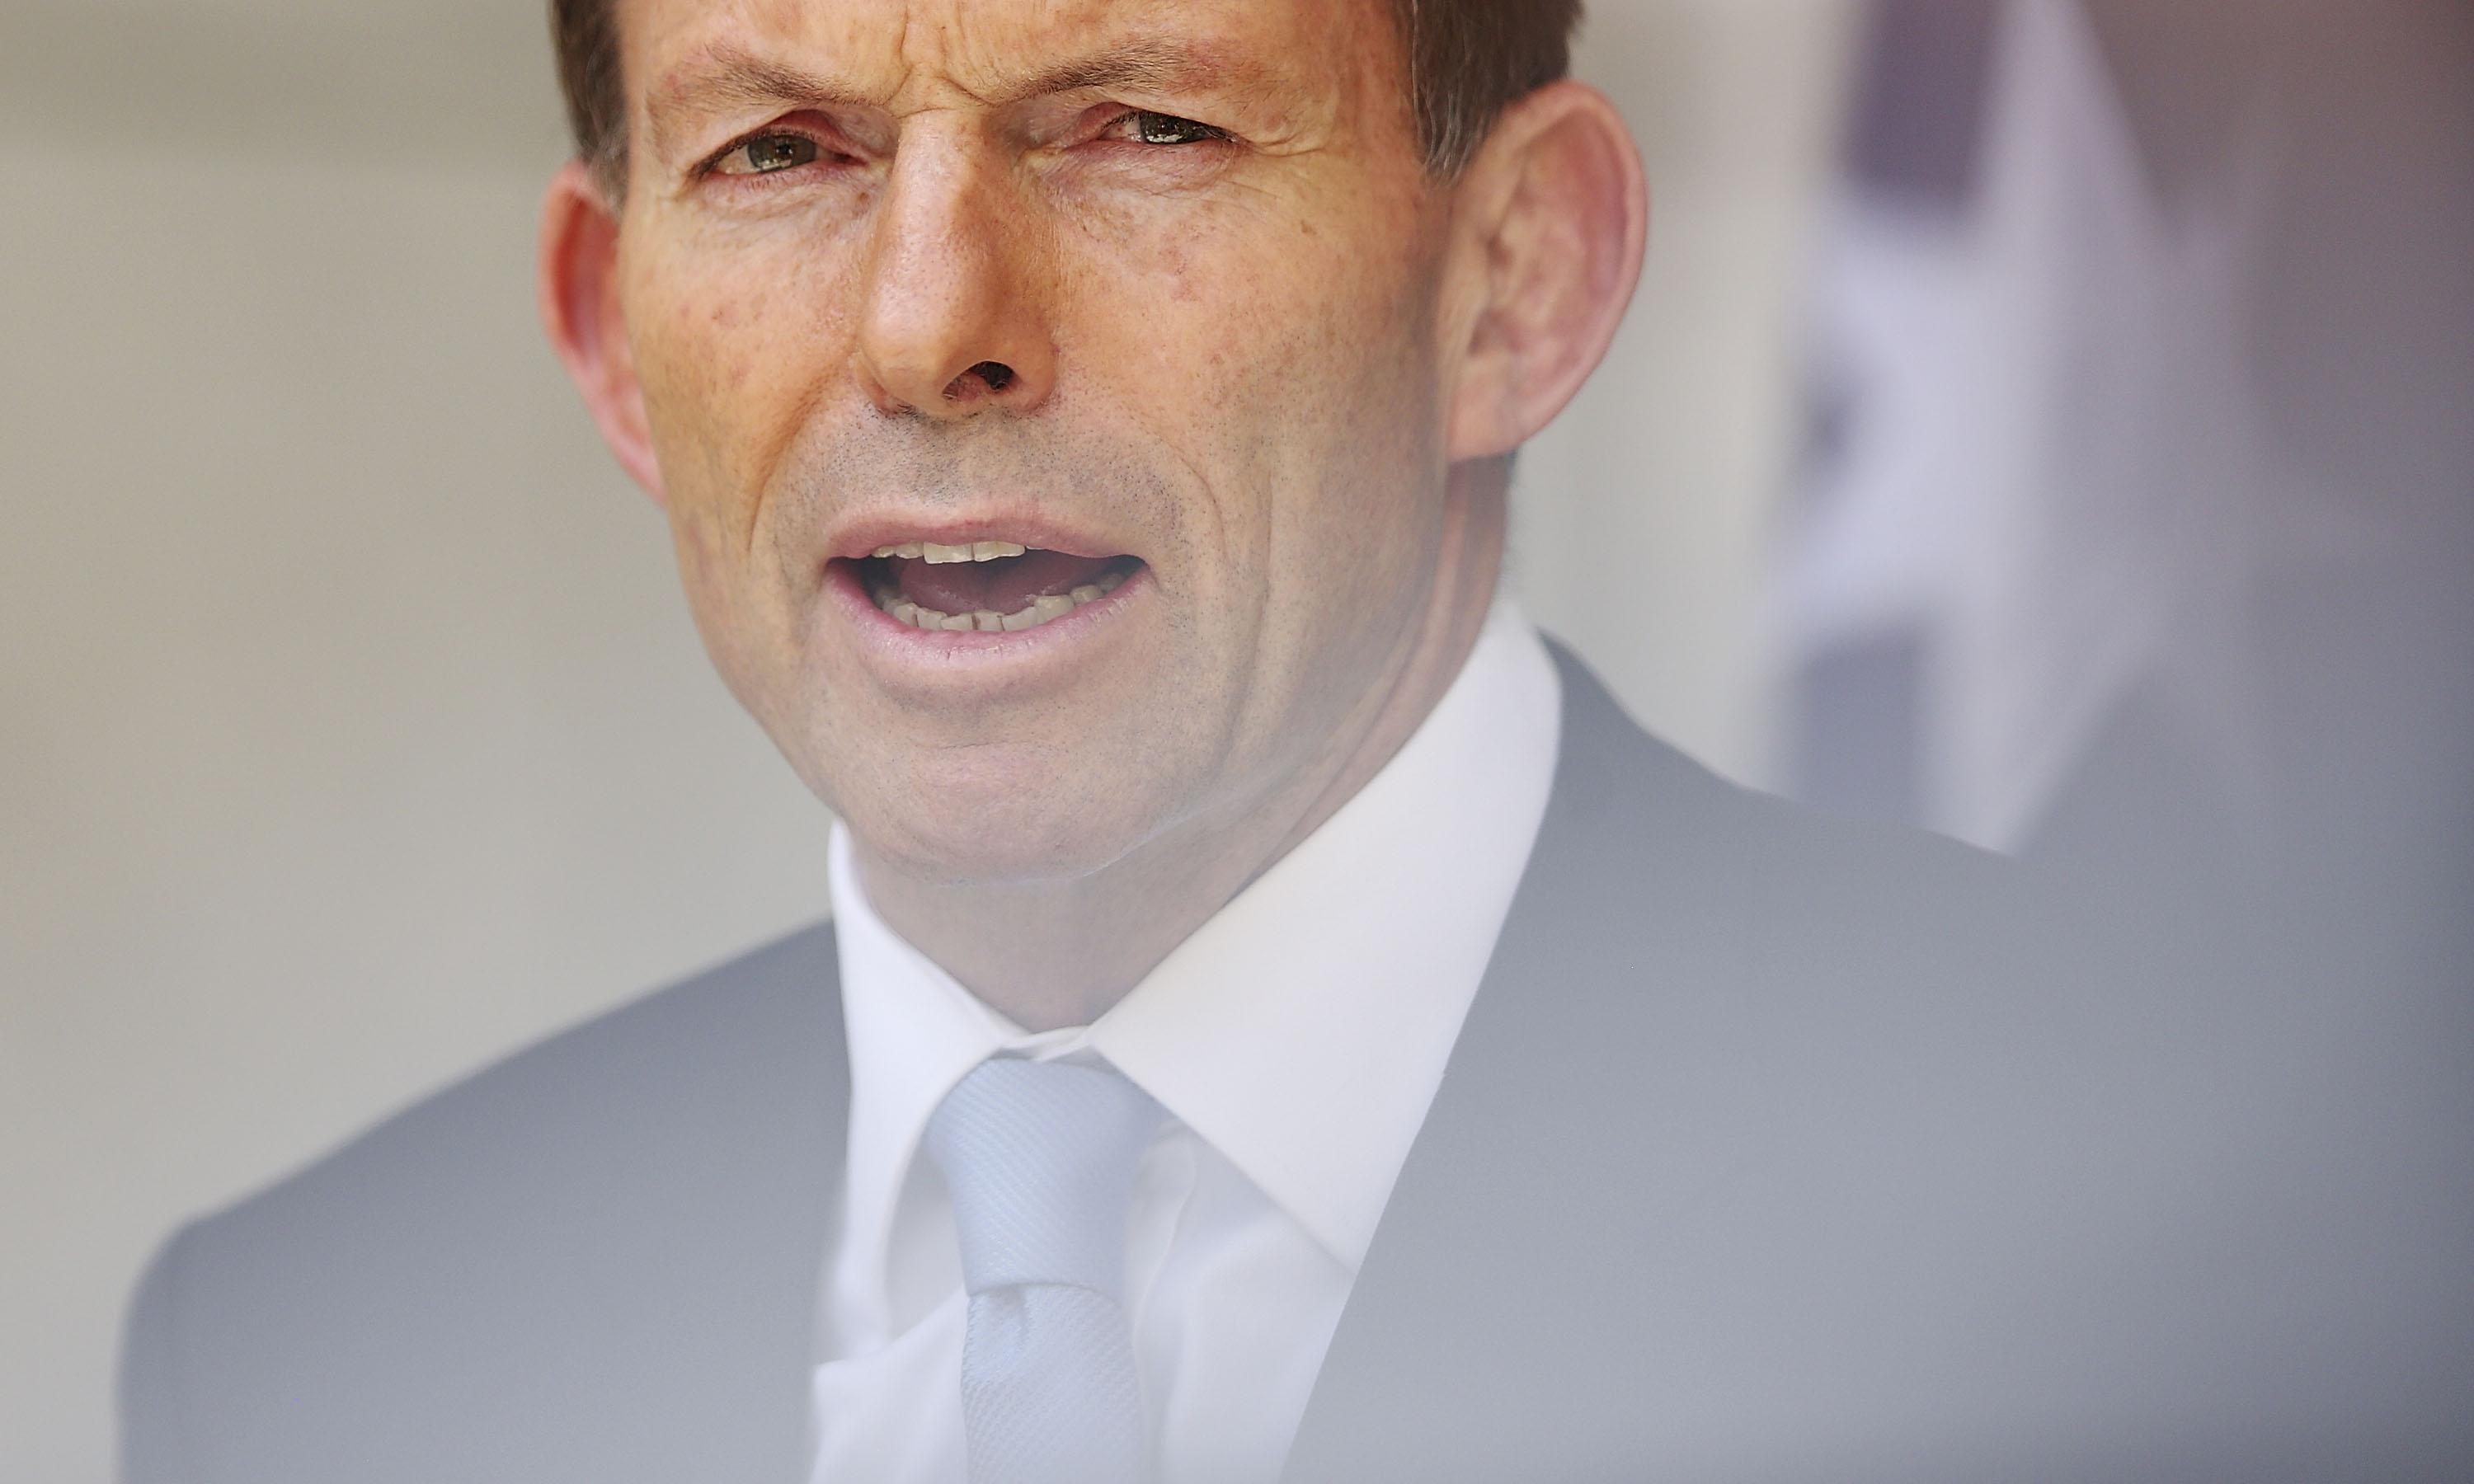 Tony Abbott defends his record in first interview after leadership coup